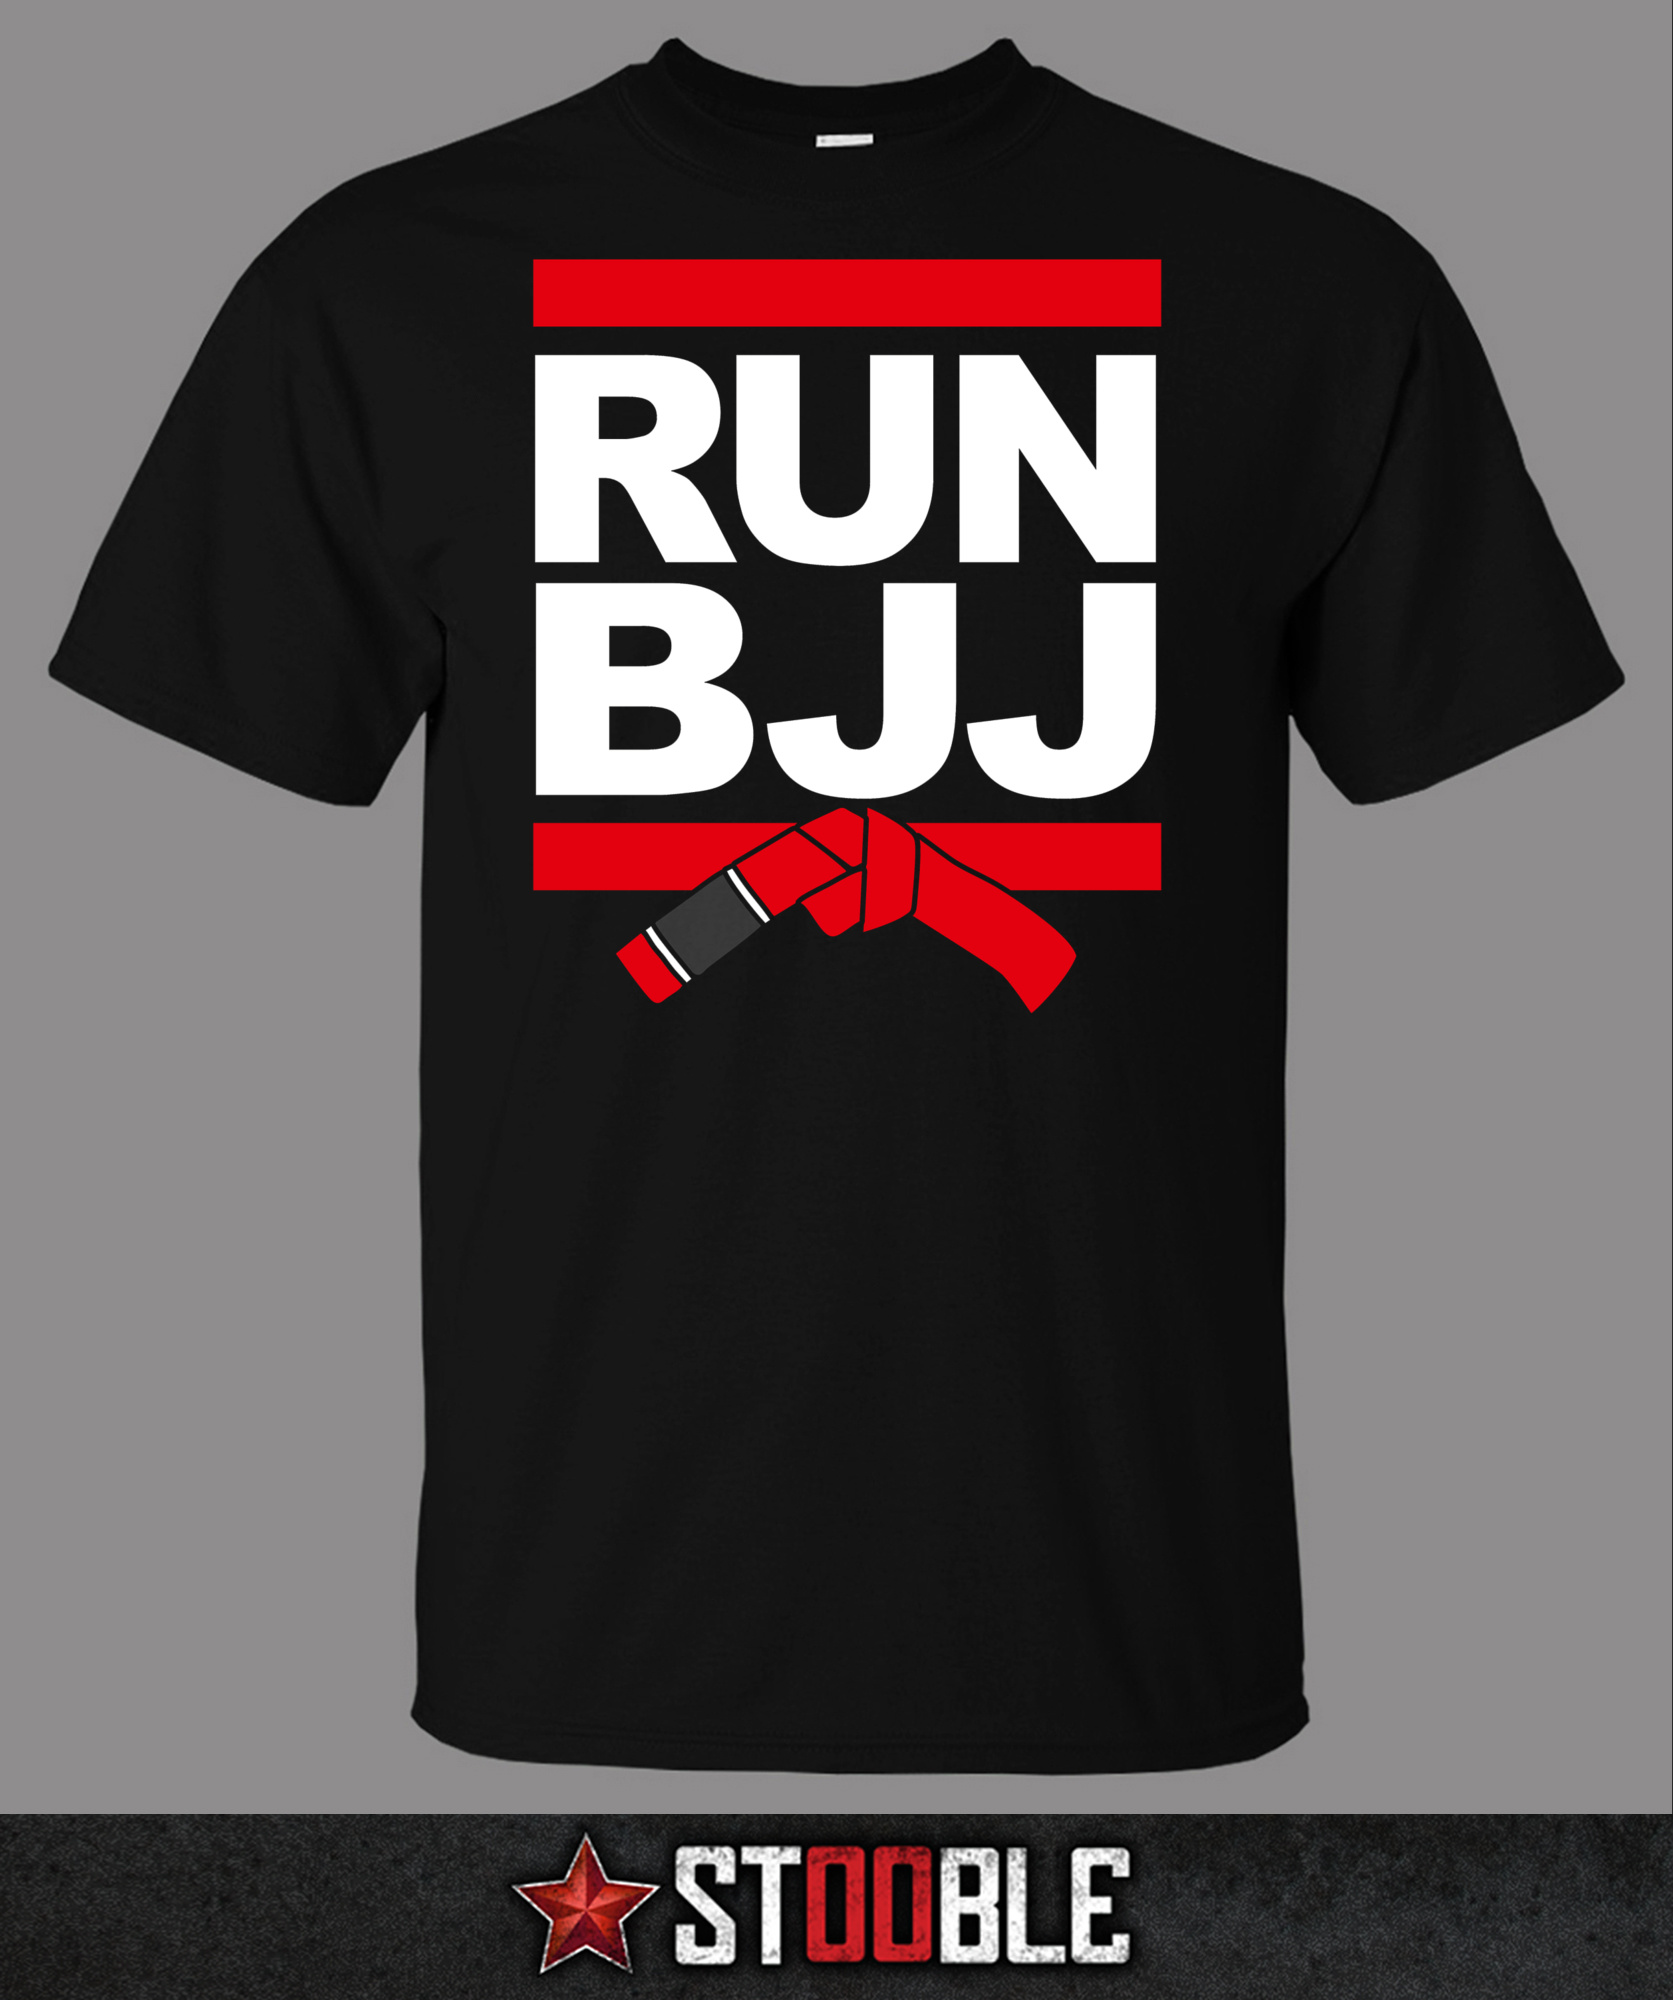 Run BJJ Jiu Jitsu T-Shirt - New - Direct from Manufacturer